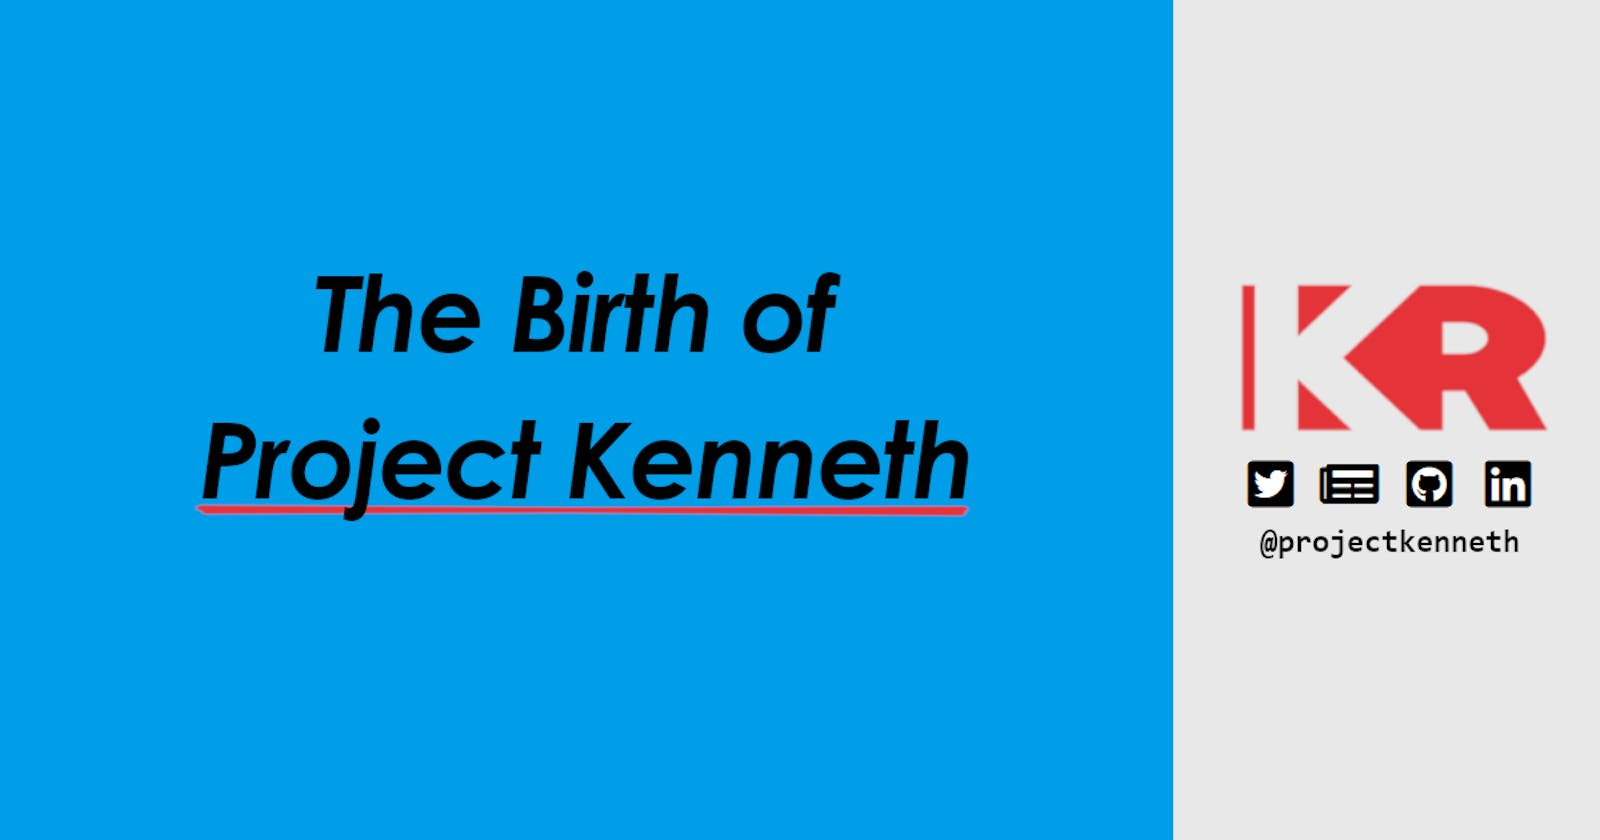 The Birth of Project Kenneth